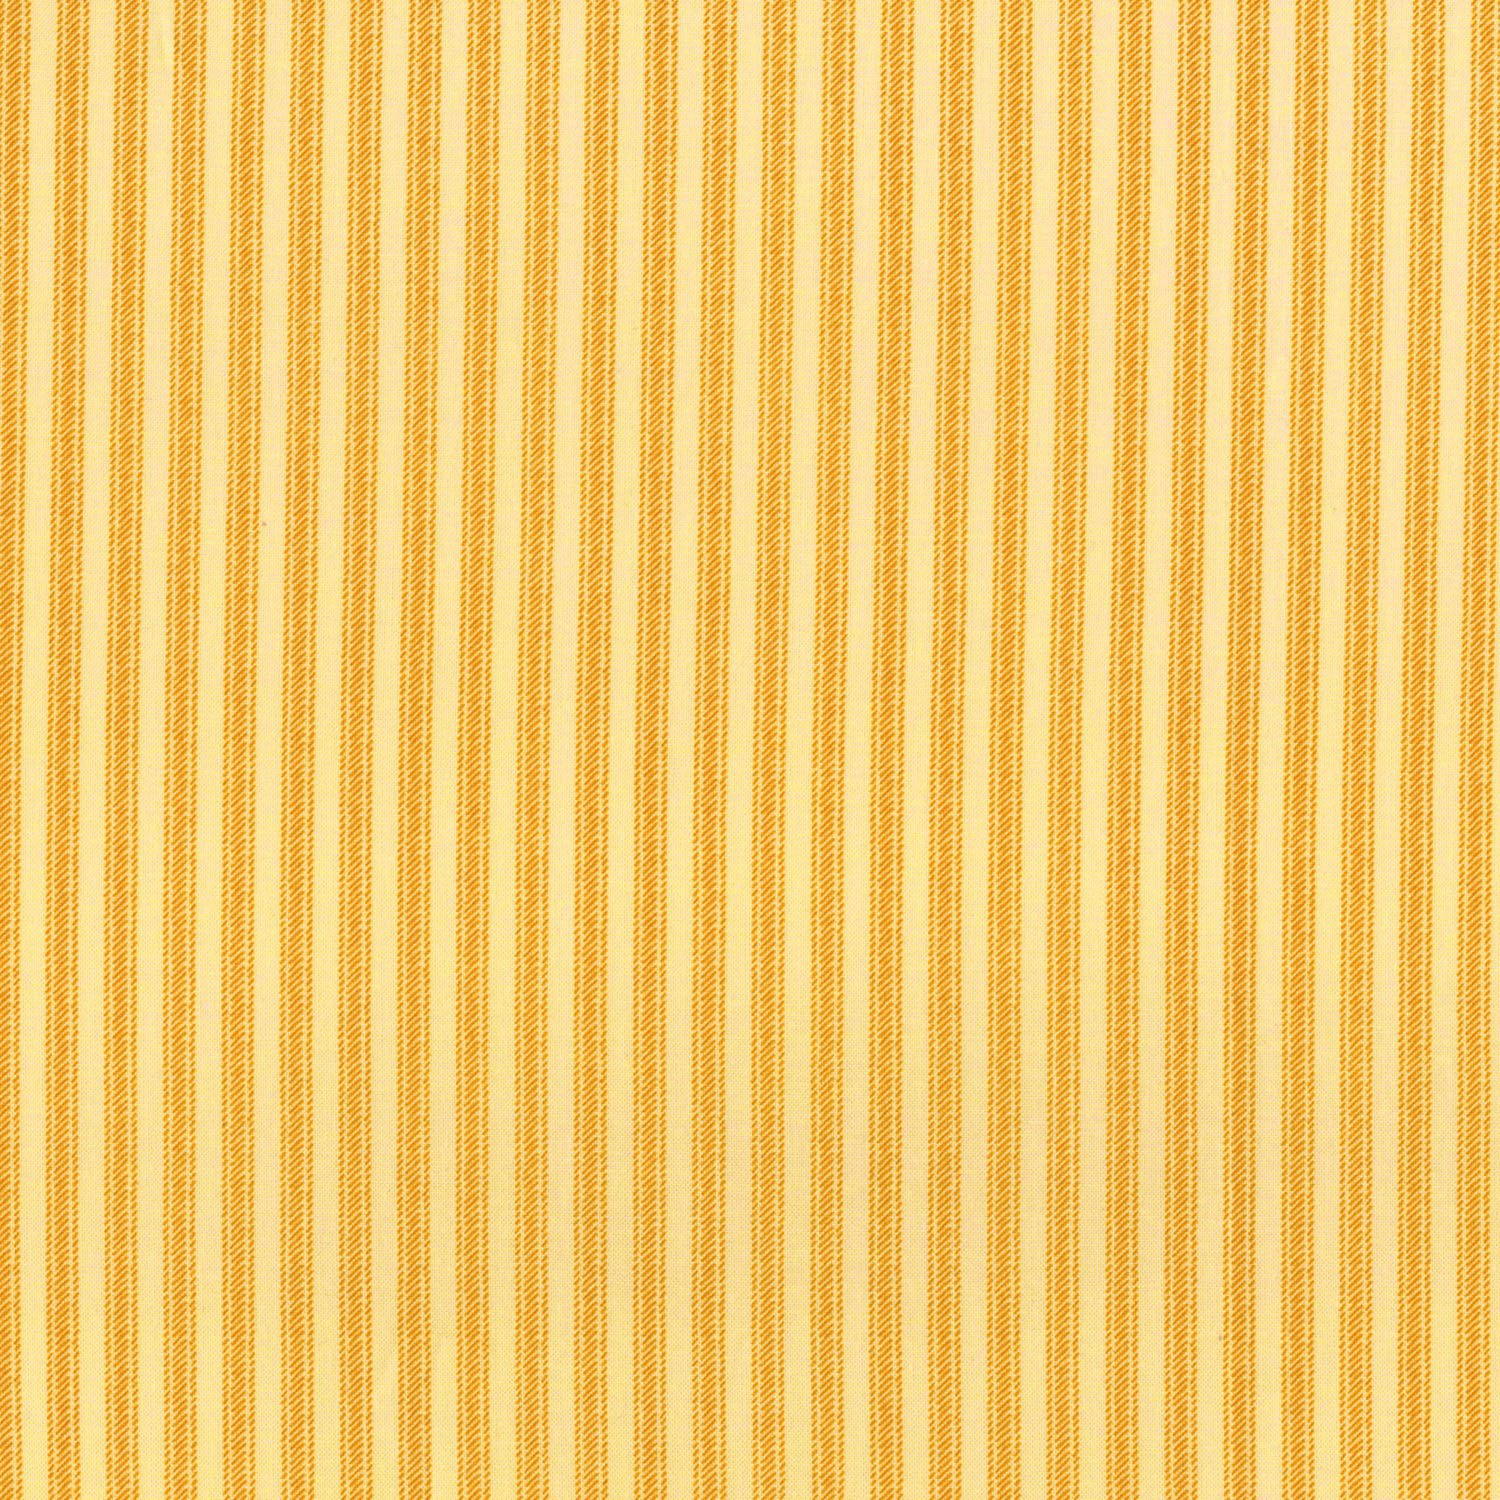 RJR 2959 Yellow Stripes